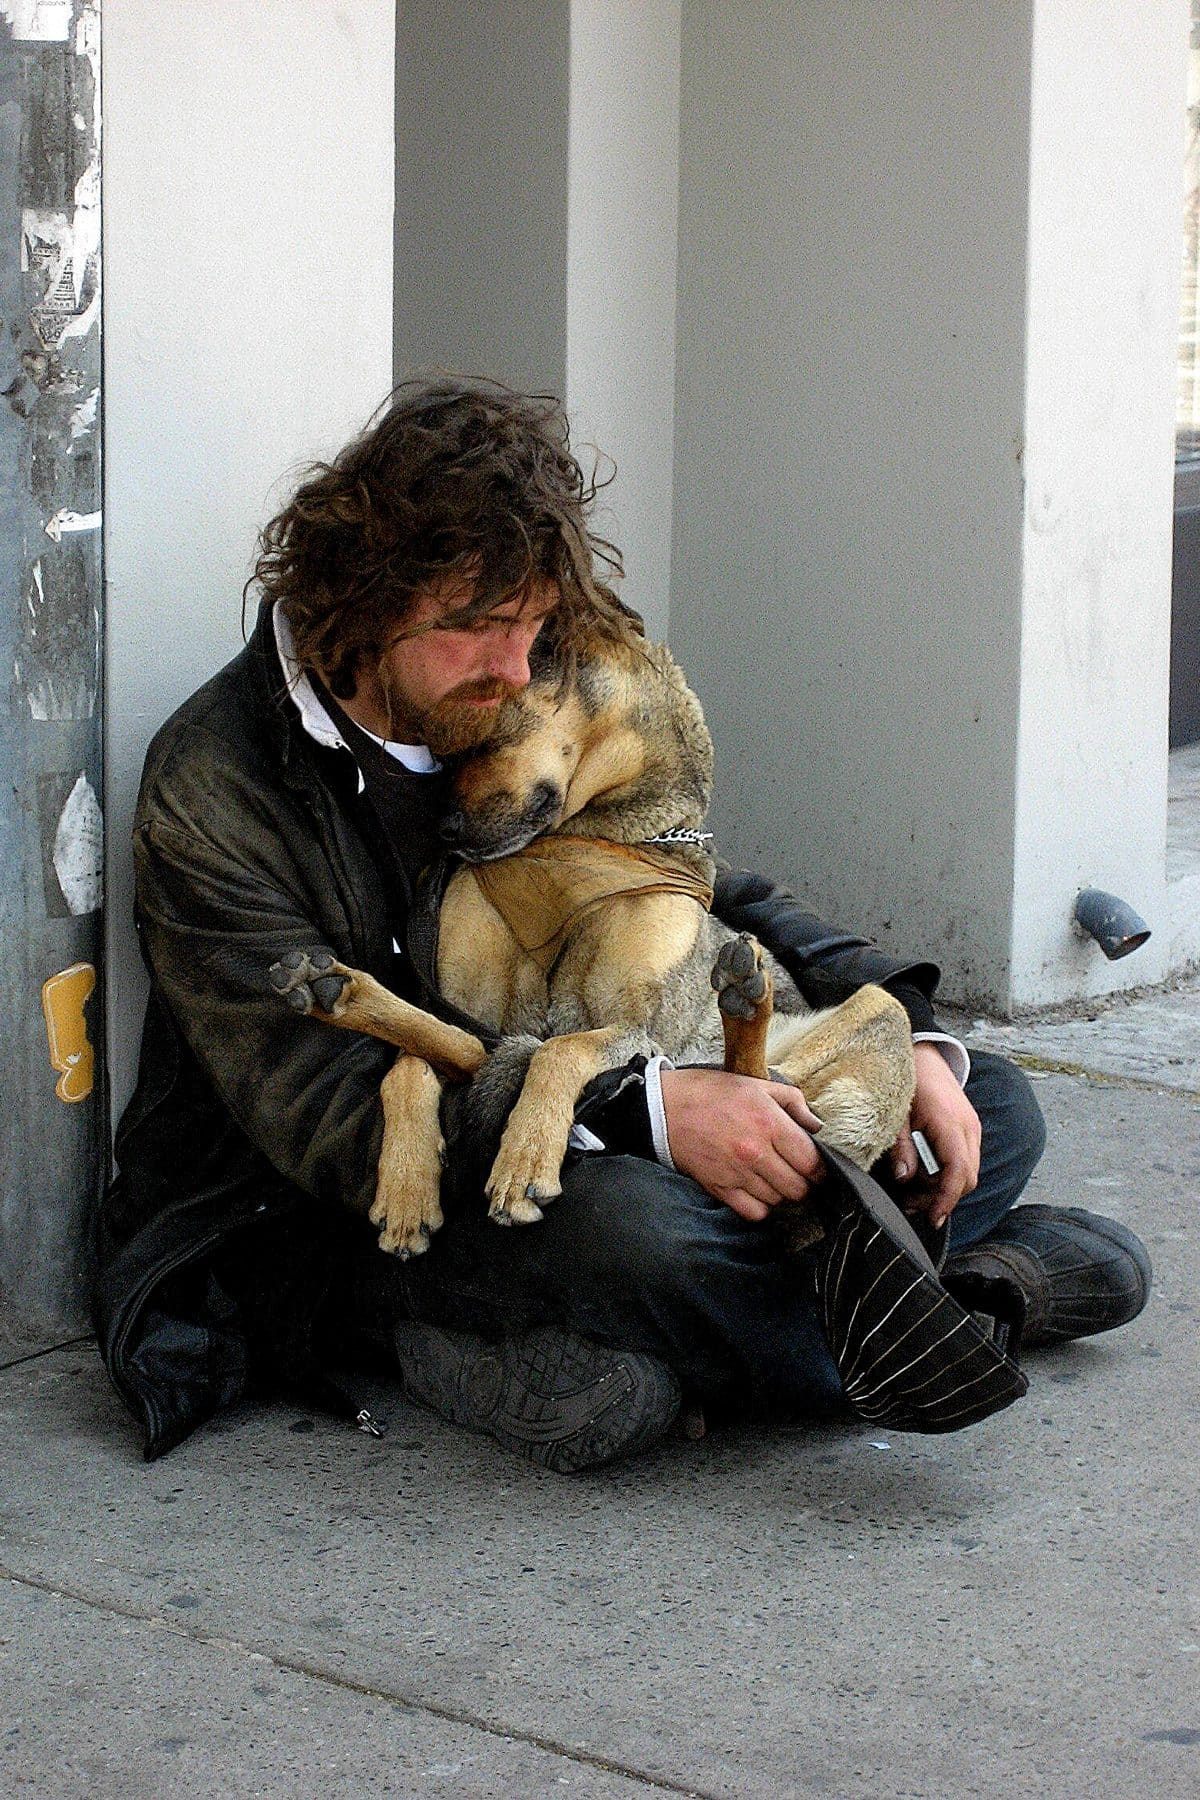 homeless man with longish brown hair and beard in old clothing sits on street closely cuddlinghis large tan-and-gray dog